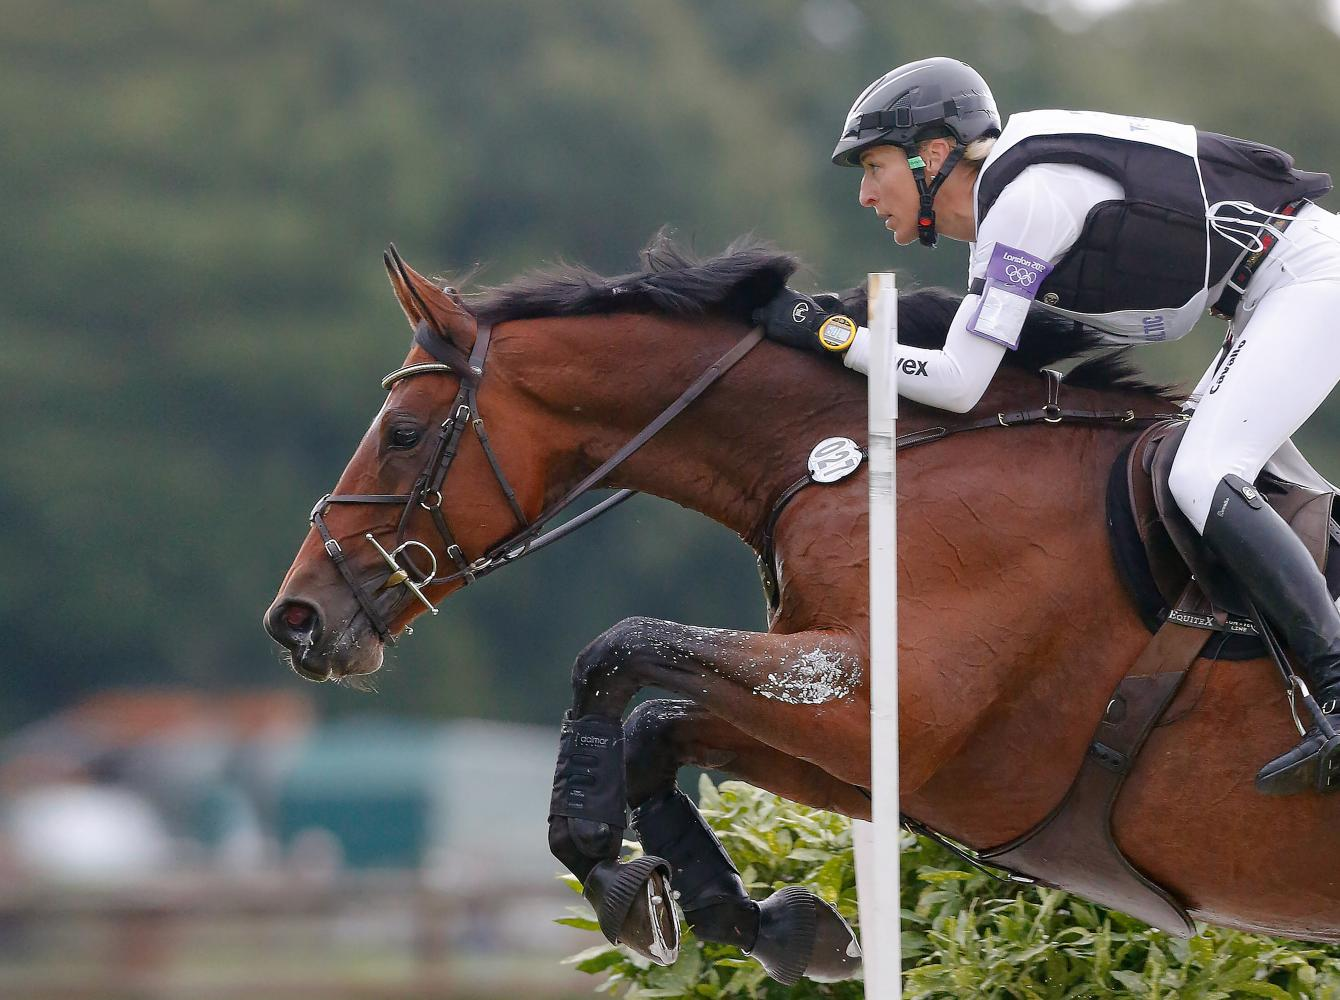 Ingrid Klimke in the Jumping discipline of an Eventing contest